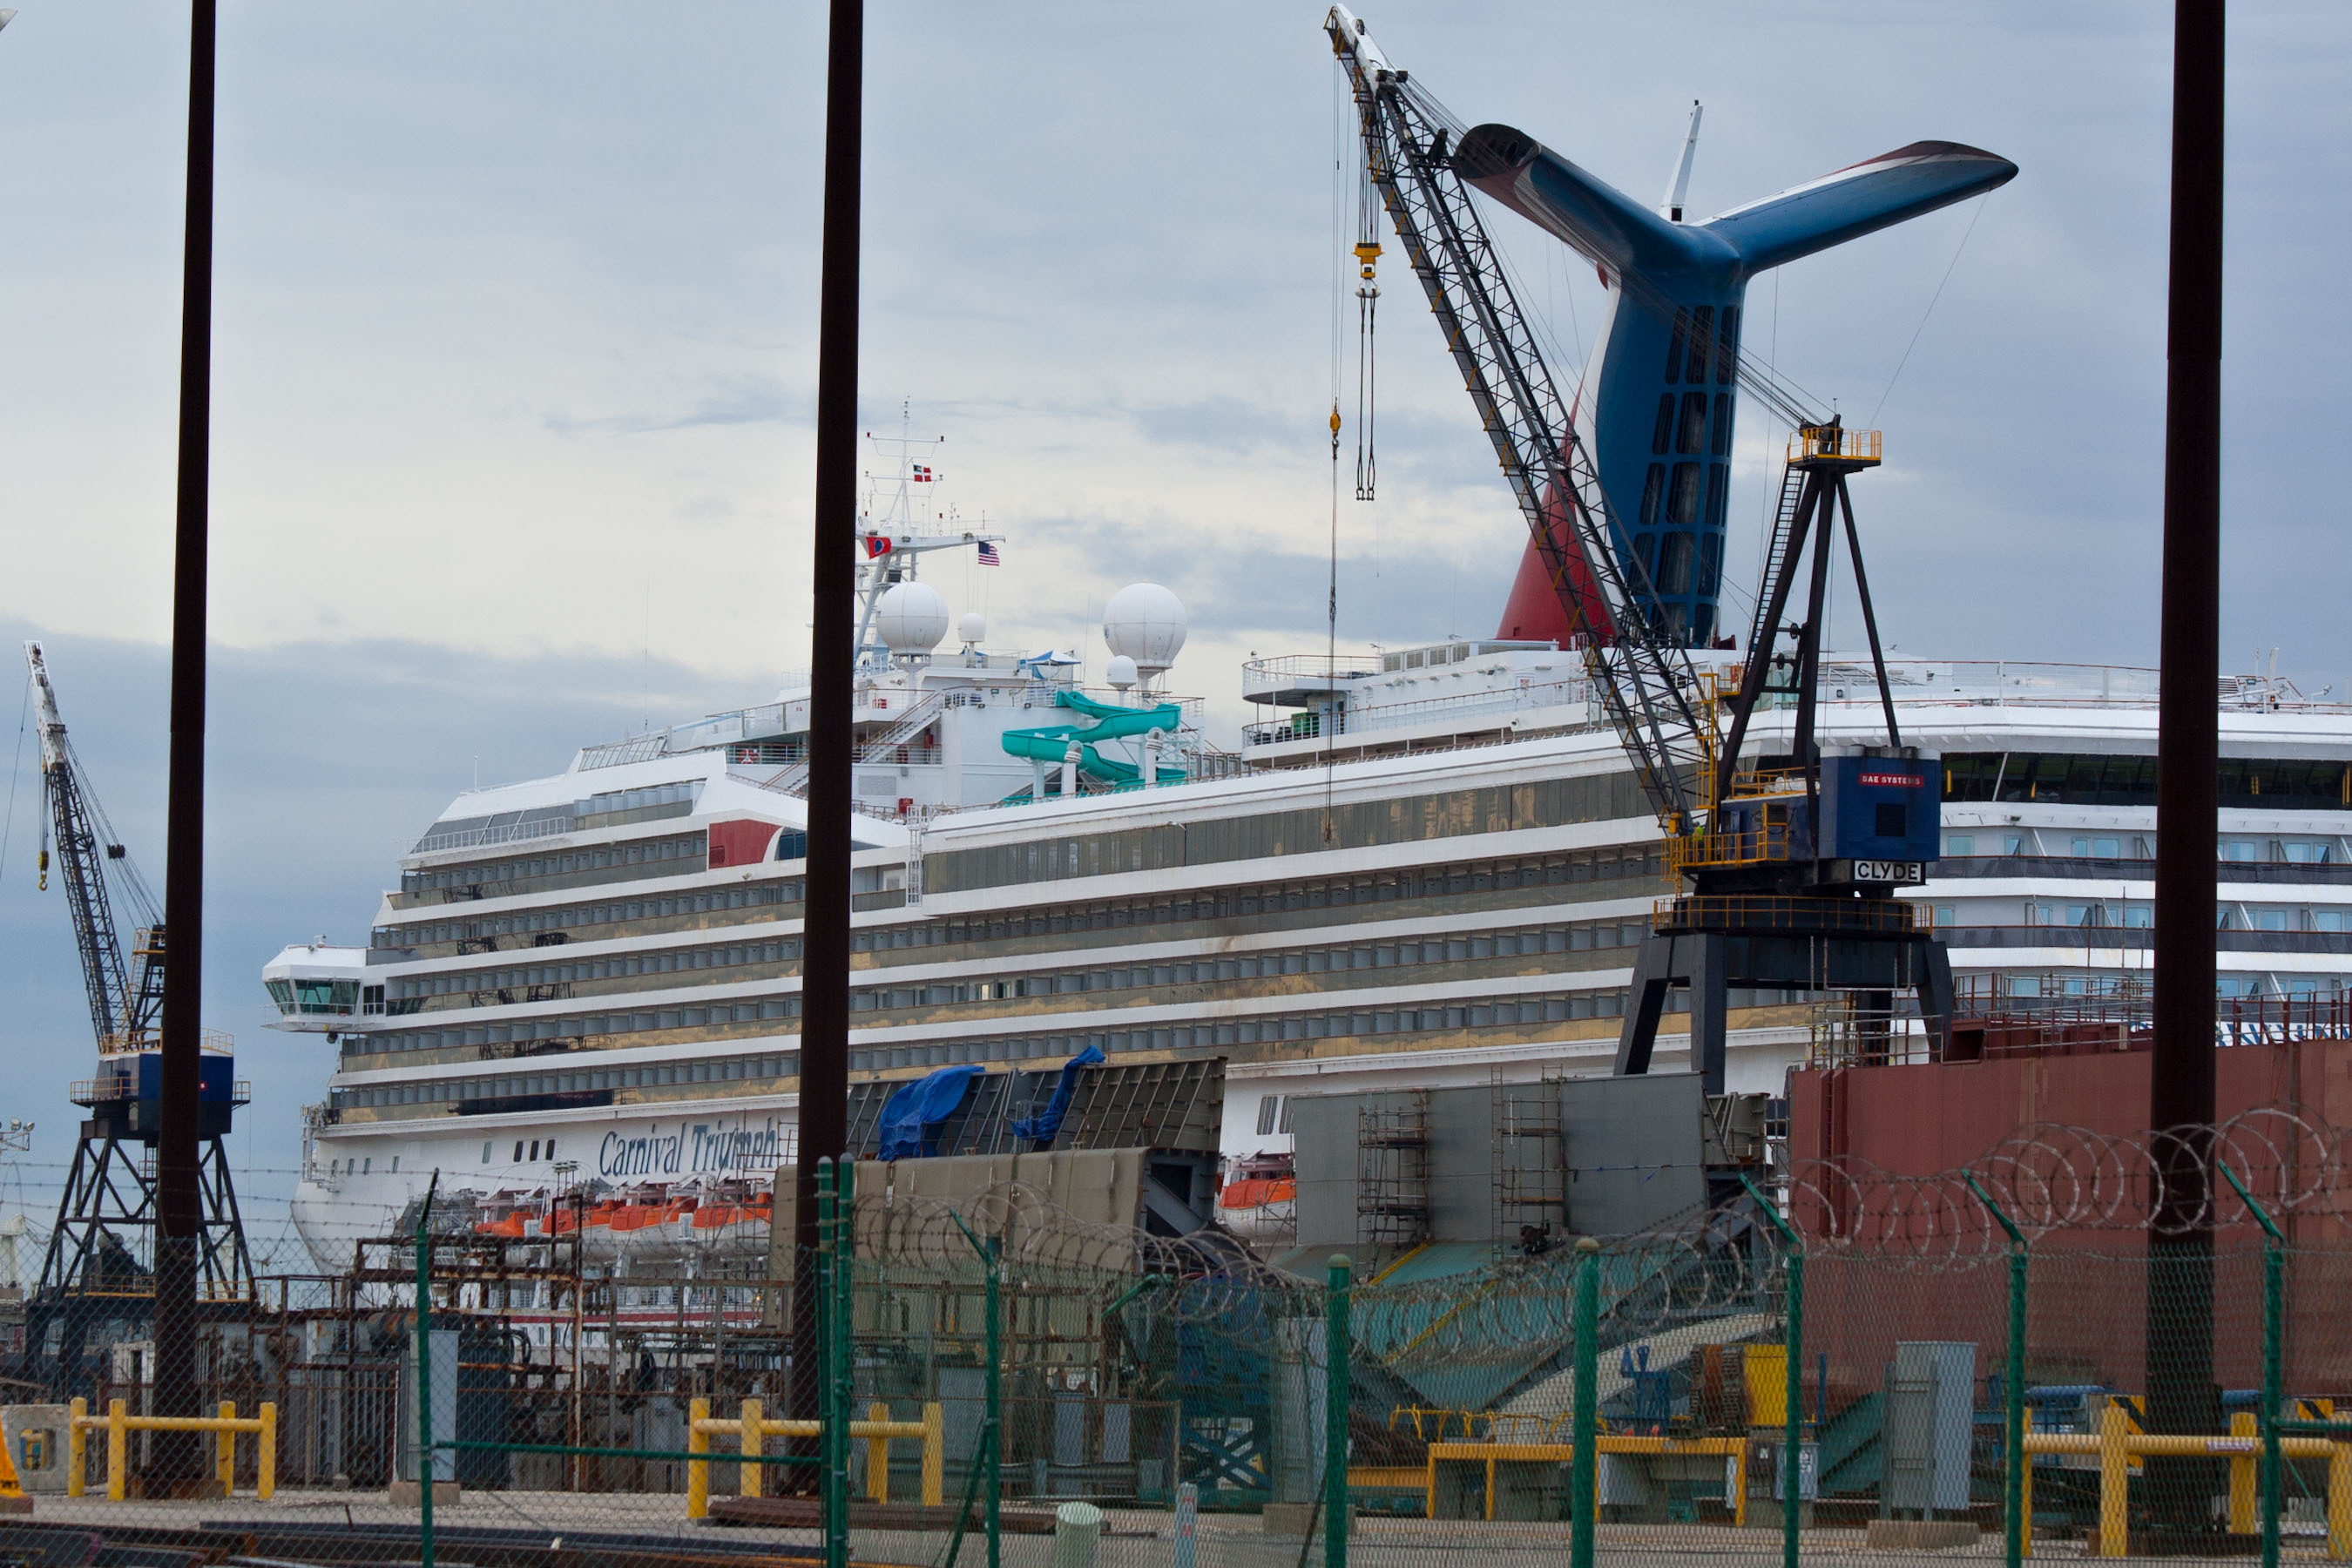 """""""If your final destination is a shipyard, you might need travel insurance."""" (PRNewsFoto/Trawick International) (PRNewsFoto/TRAWICK INTERNATIONAL)"""